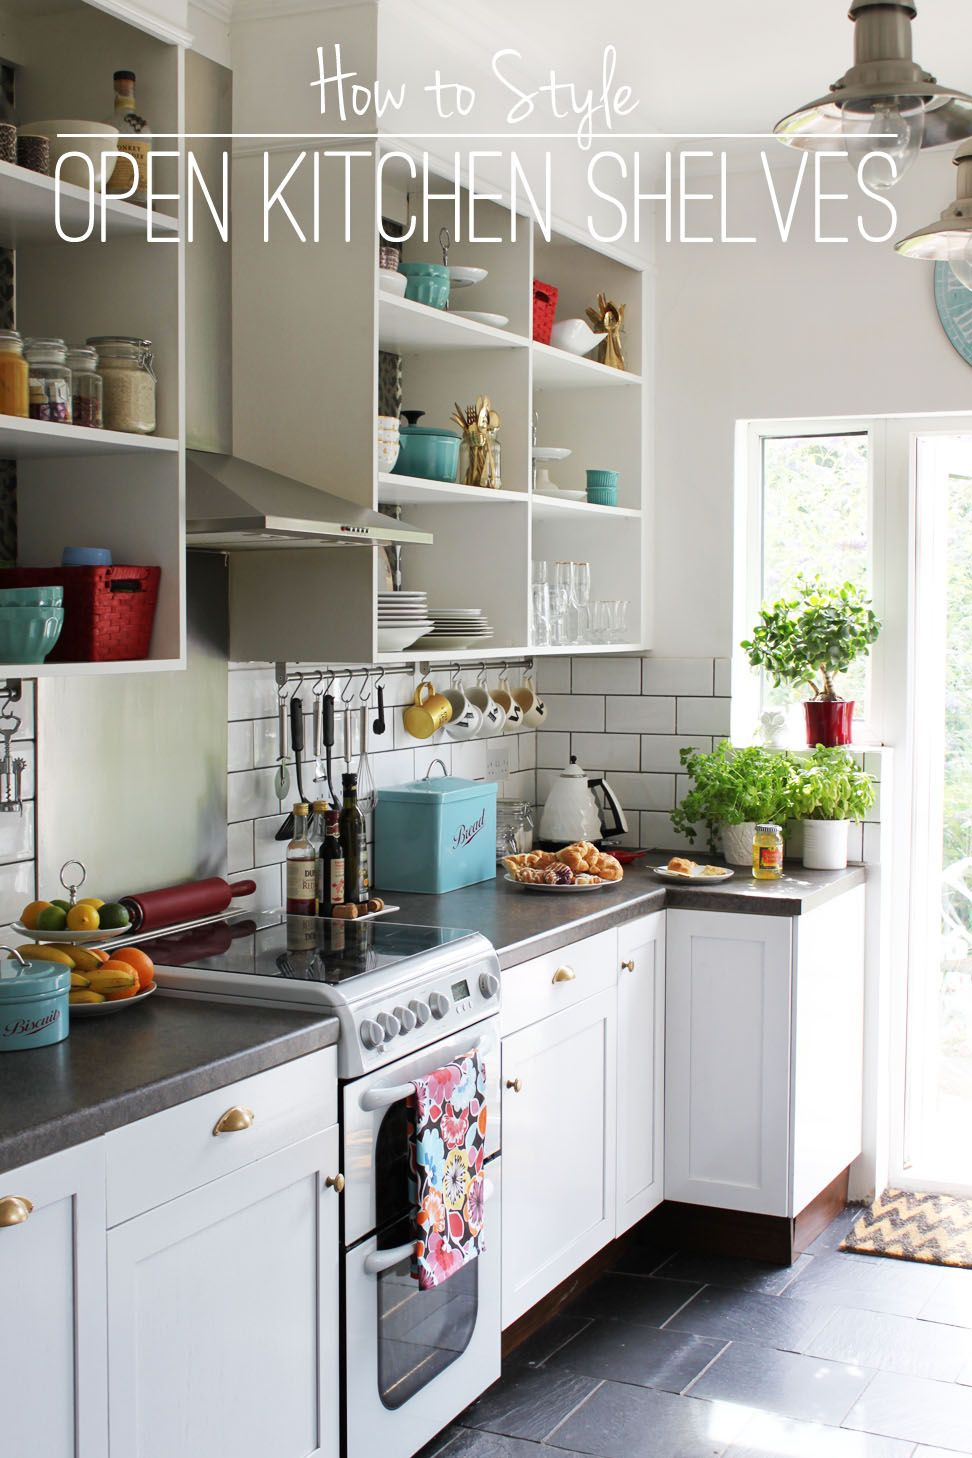 open kitchen shelves!!! yes! makes you wanna keep them clean and